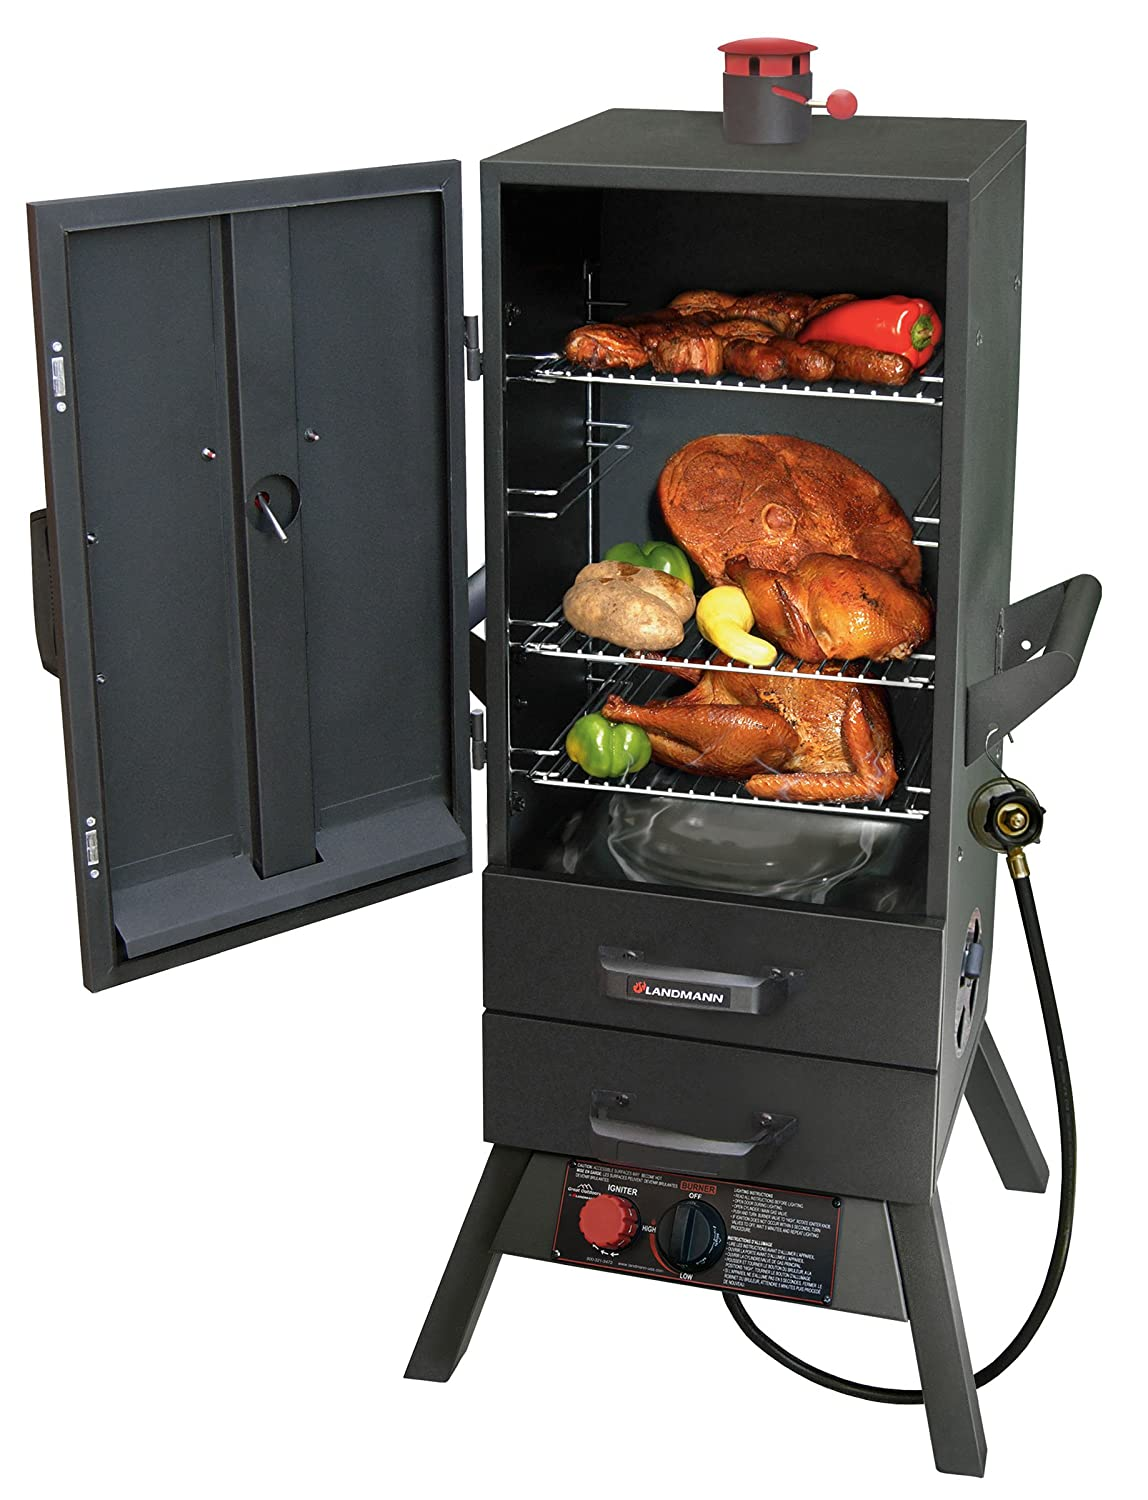 High capacity gas smoker